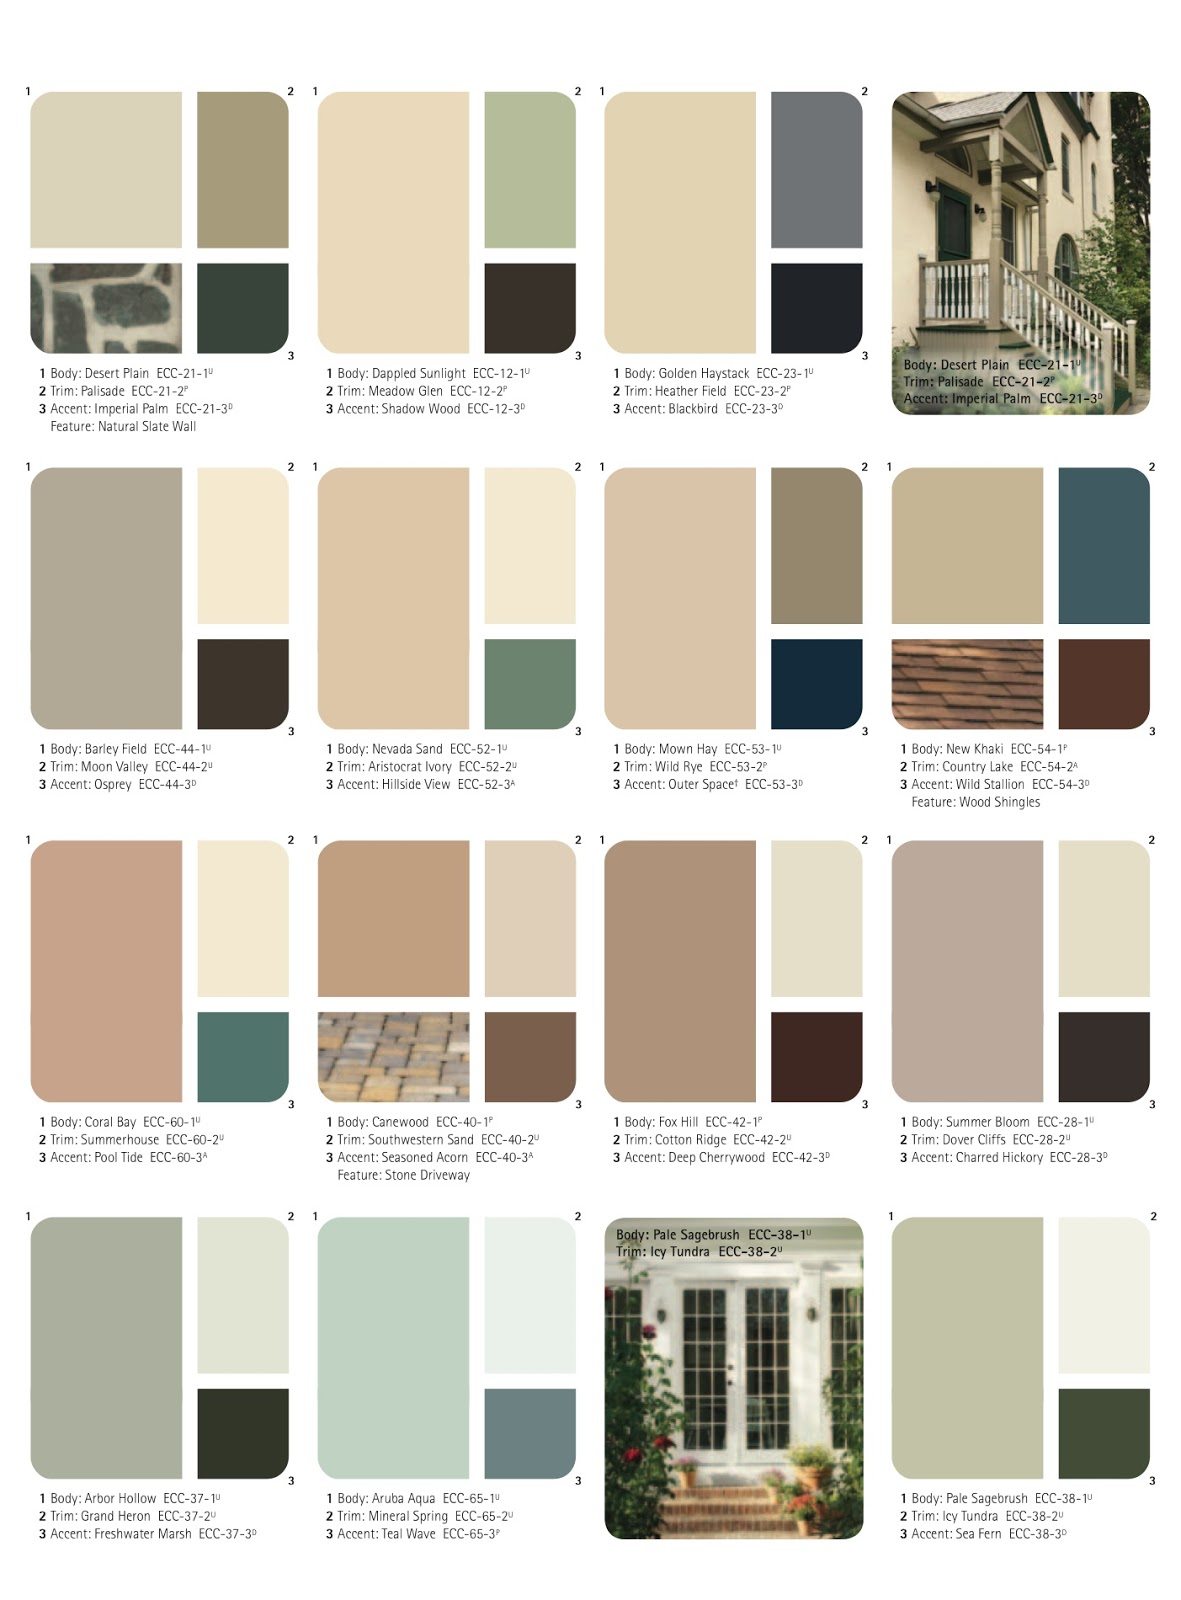 Home depot house paint home painting ideas for Exterior paint colors for homes pictures